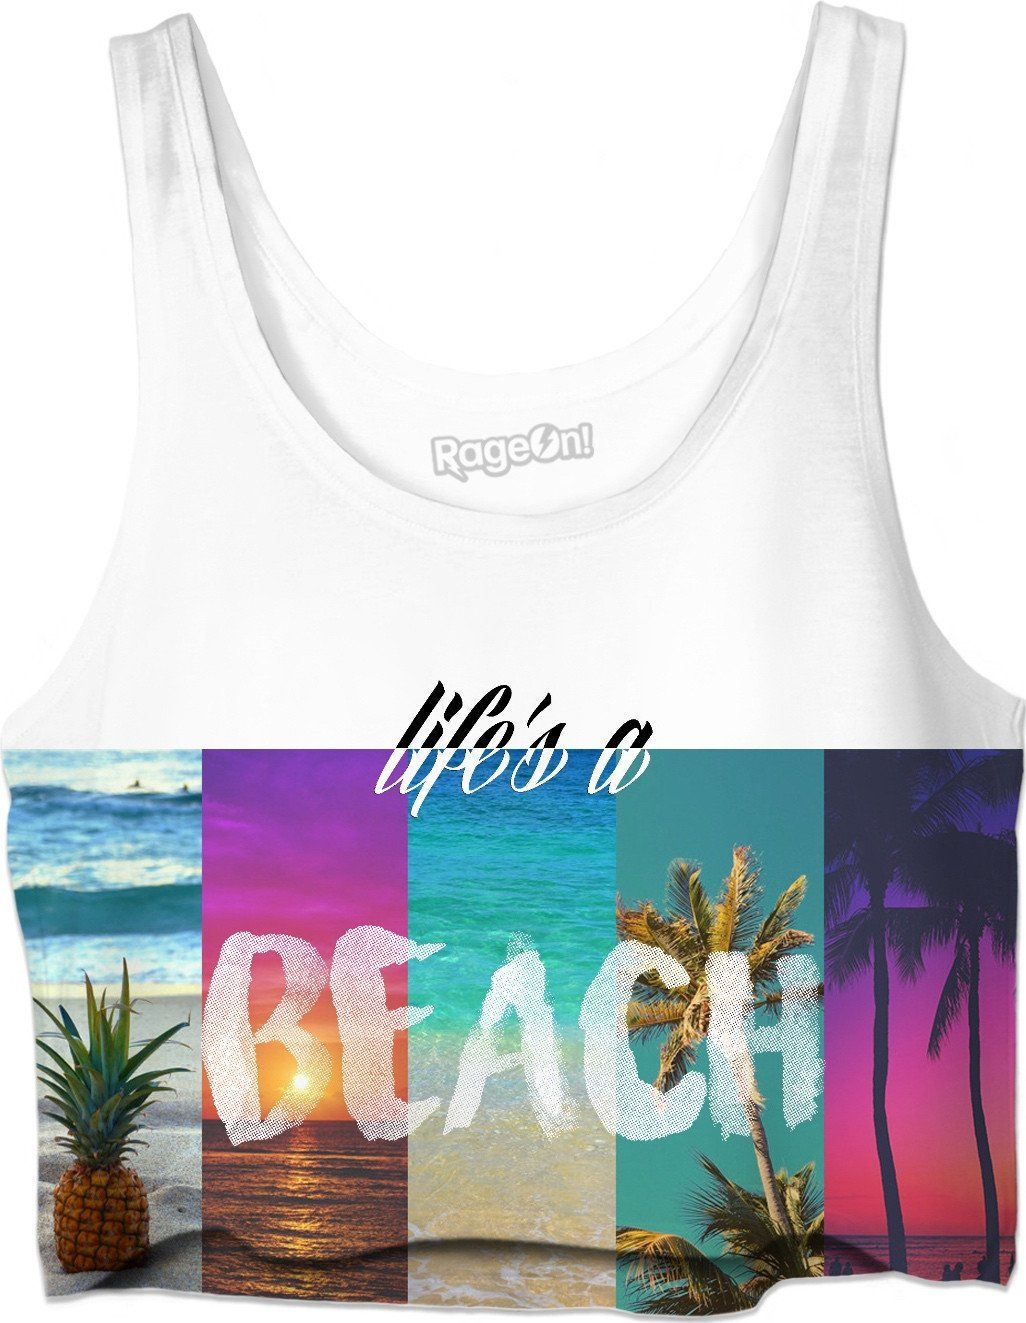 Swipe all designs for more options. Use my coupon code BOHOBABE10 for 10% off!:]